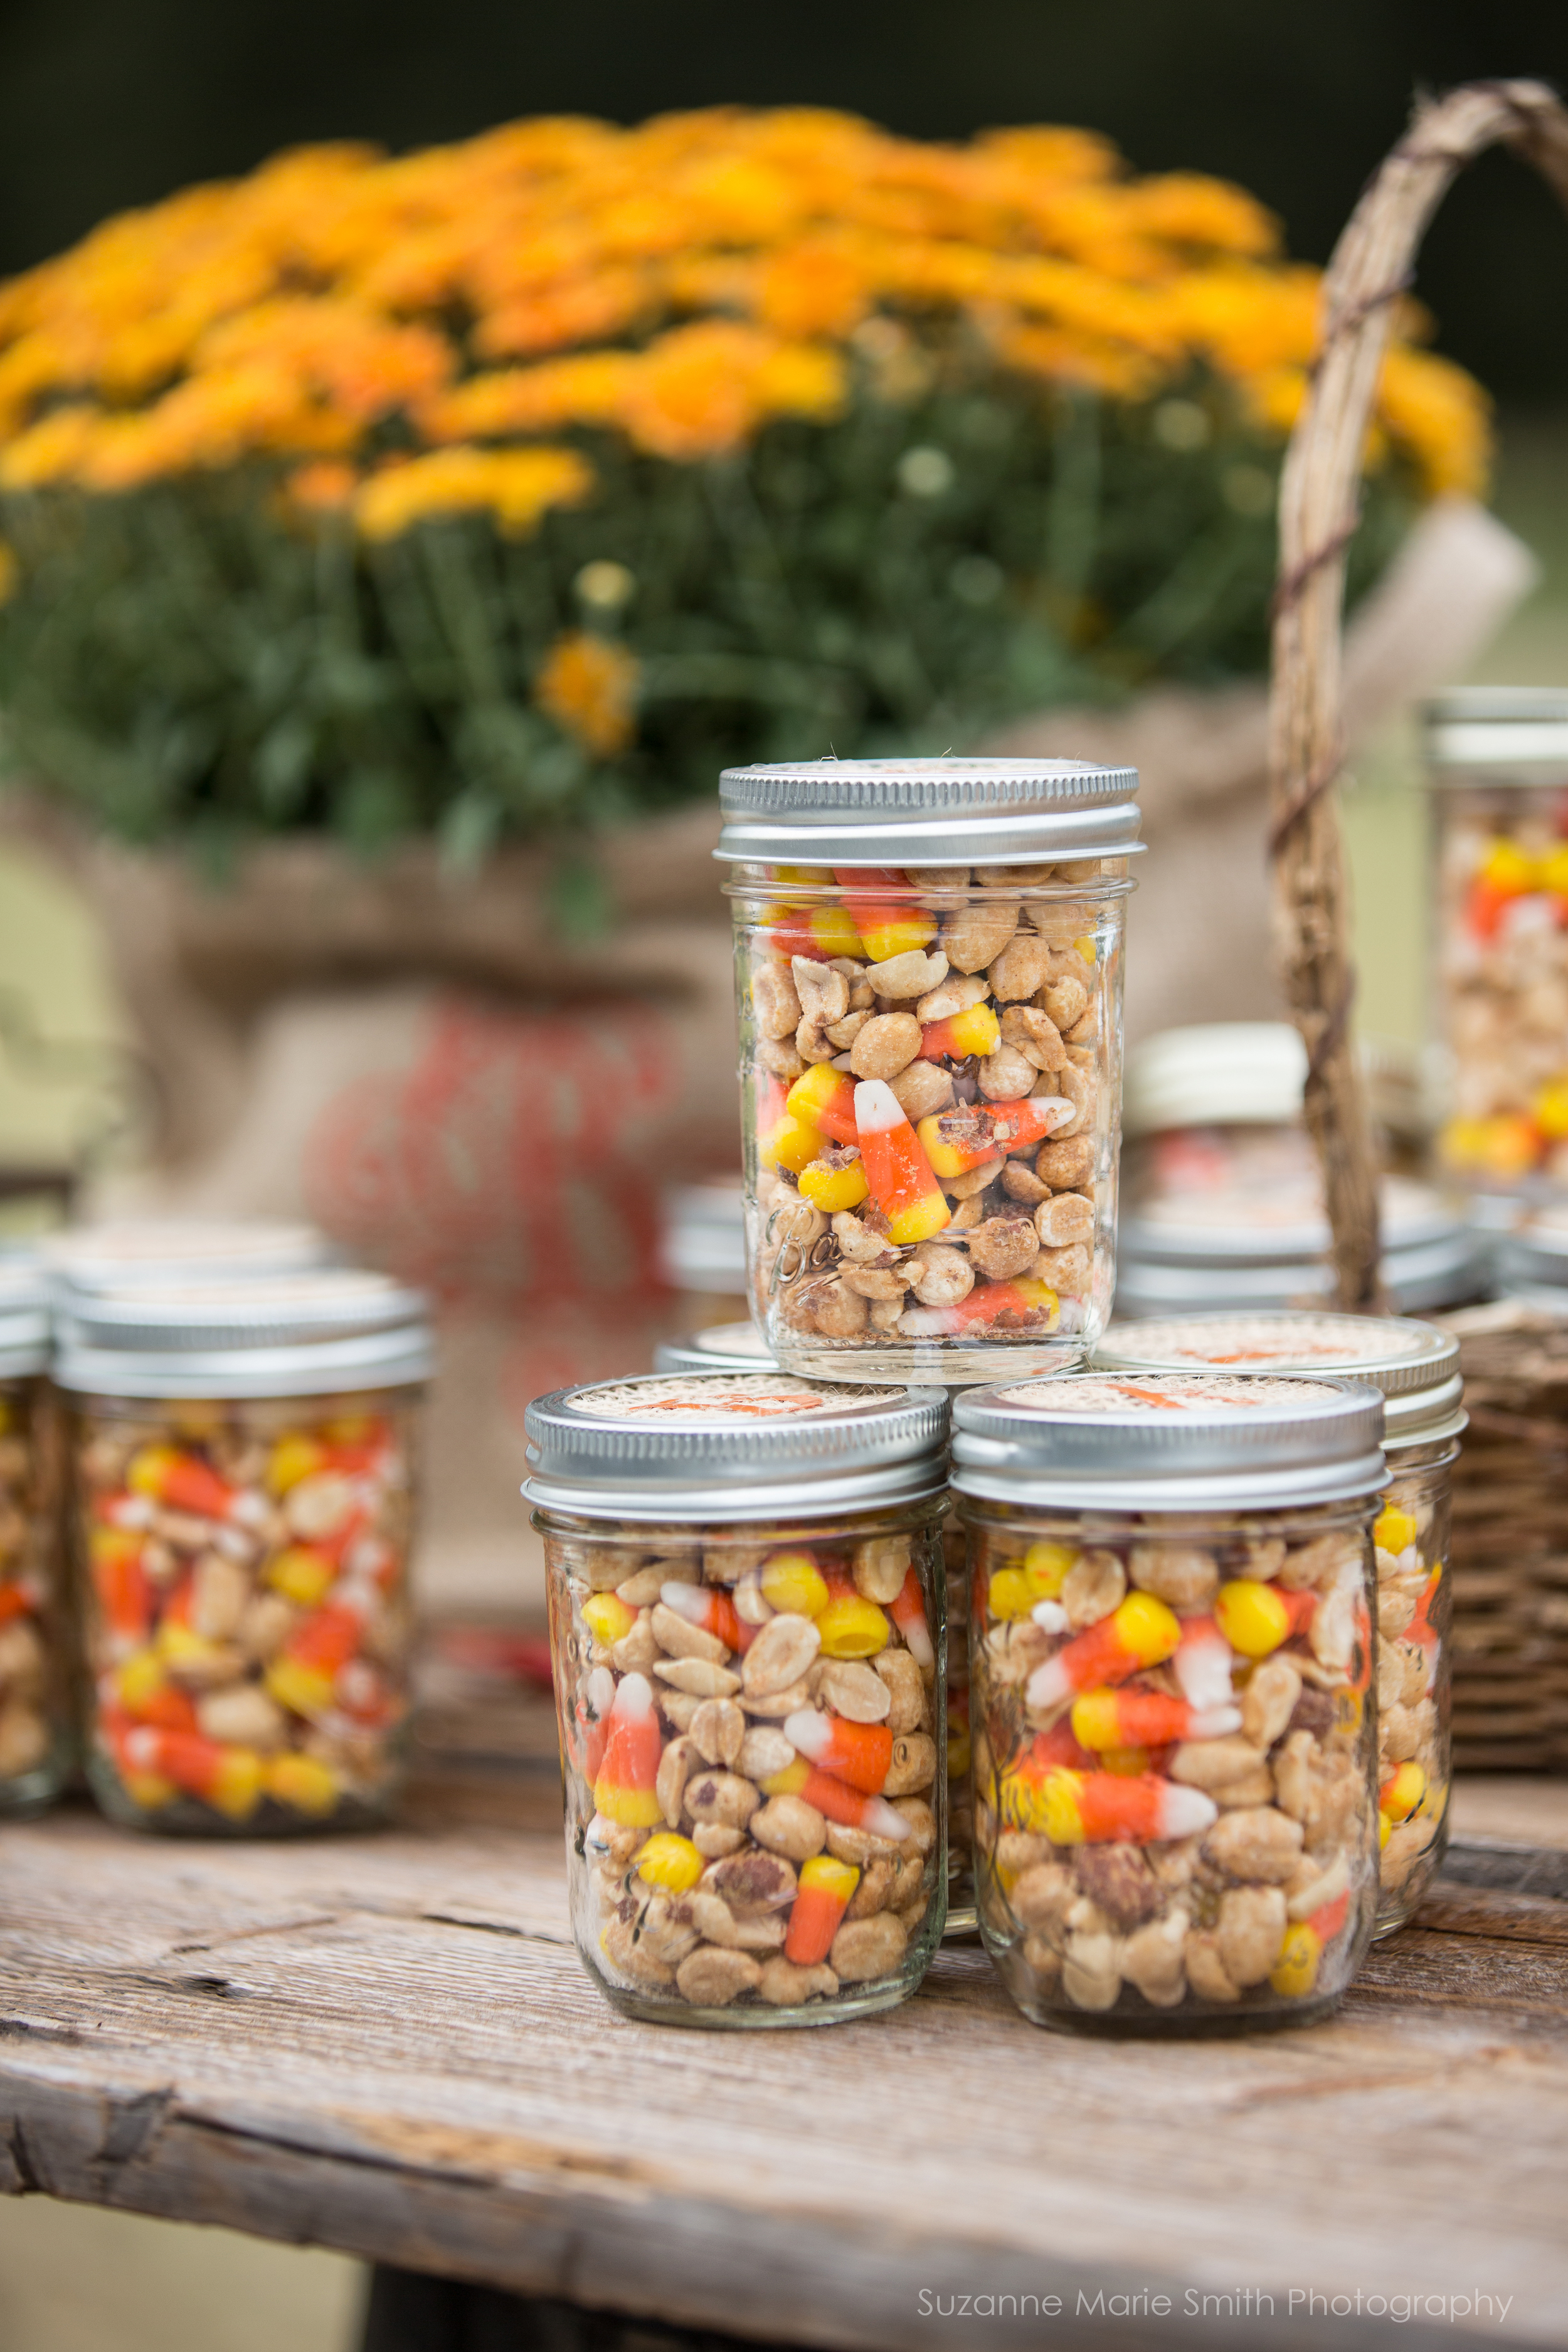 Candycorn and peanuts